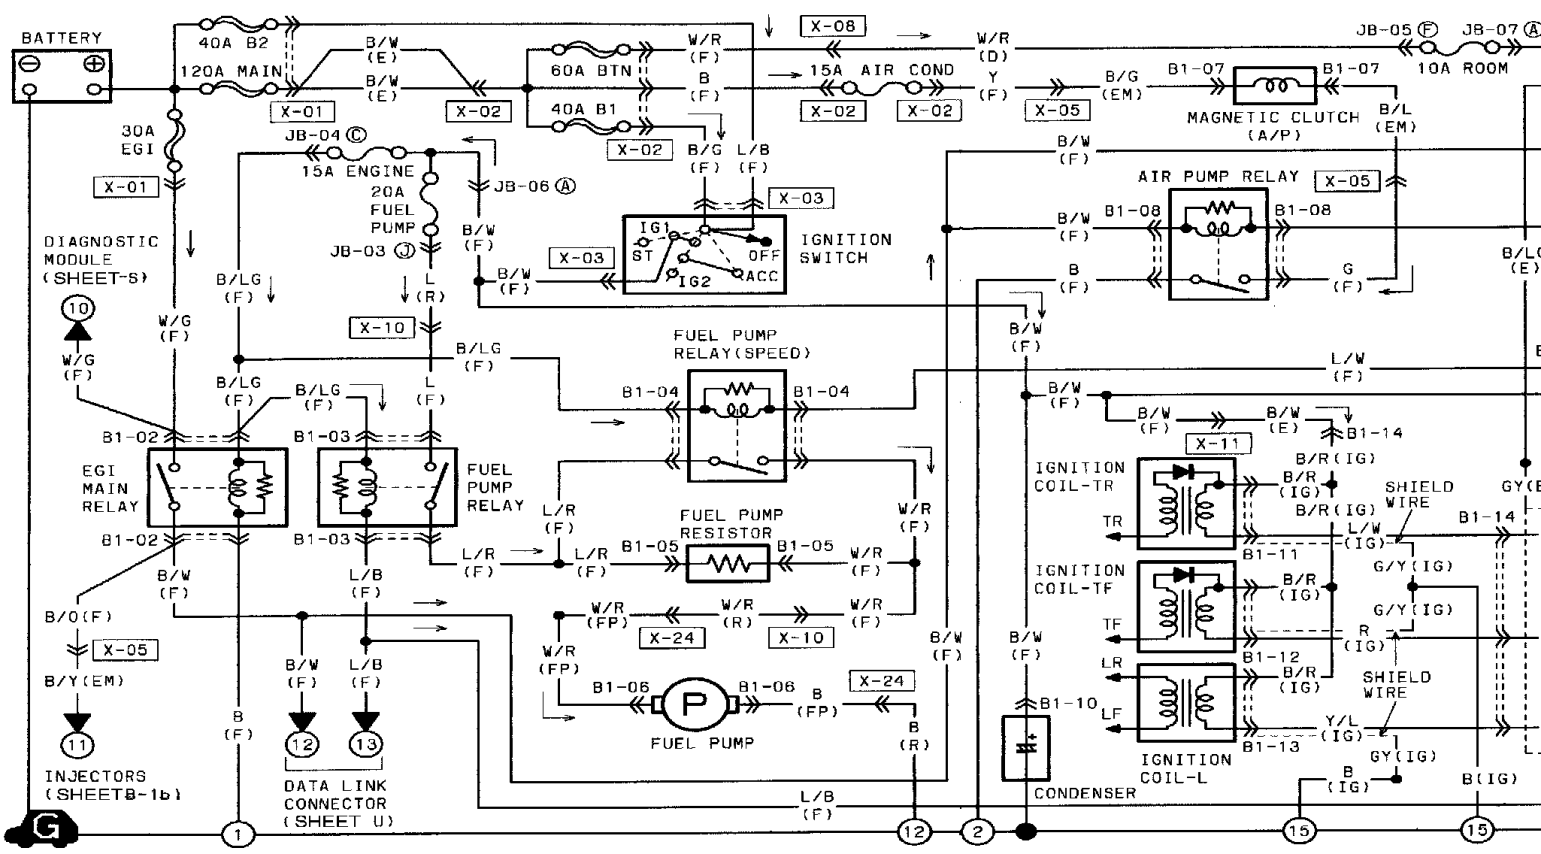 mazda rx 7 fuse box diagram